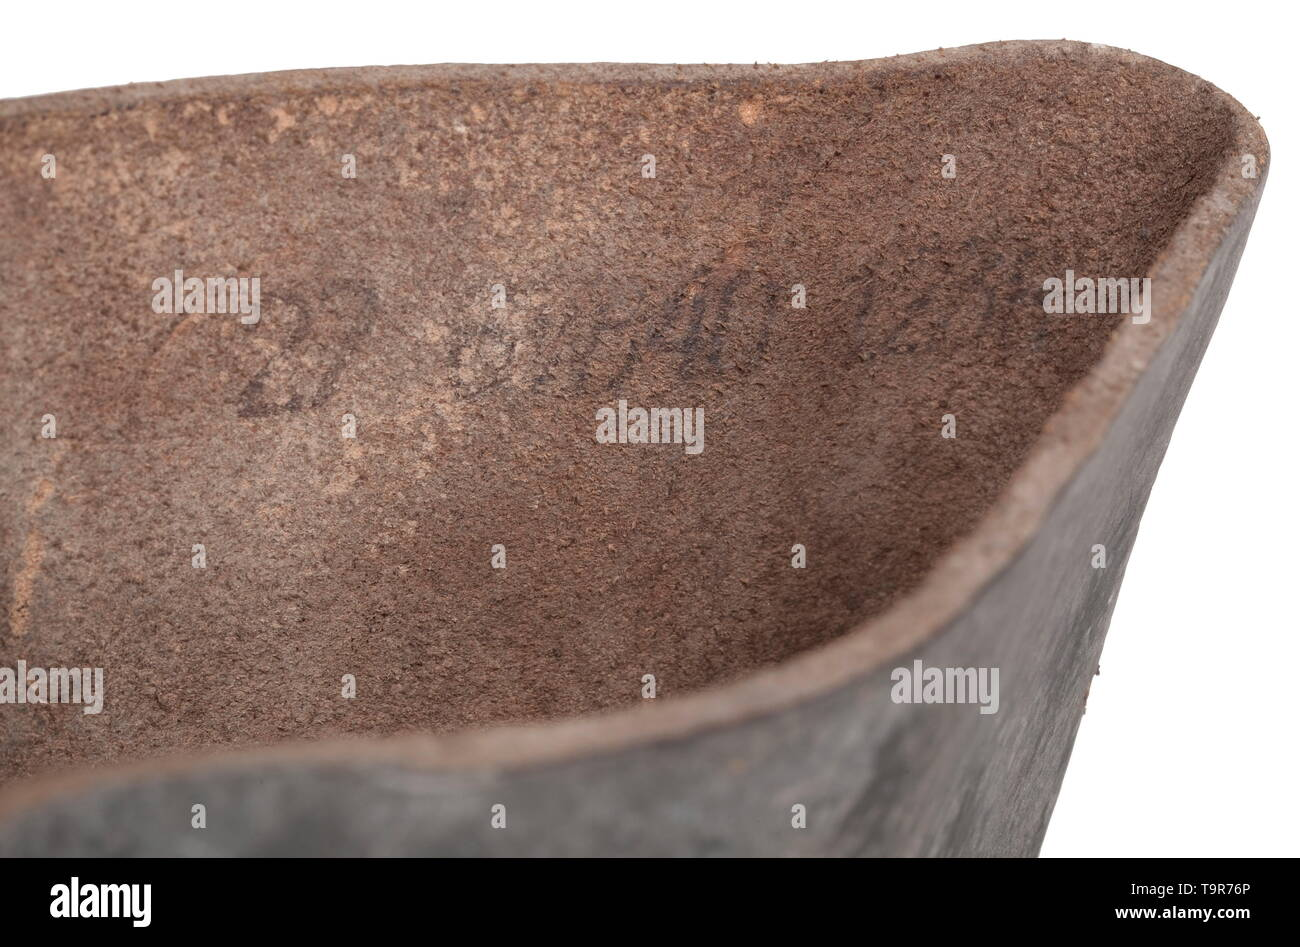 d0b3daf479b87 Marching Boots Stock Photos & Marching Boots Stock Images - Alamy